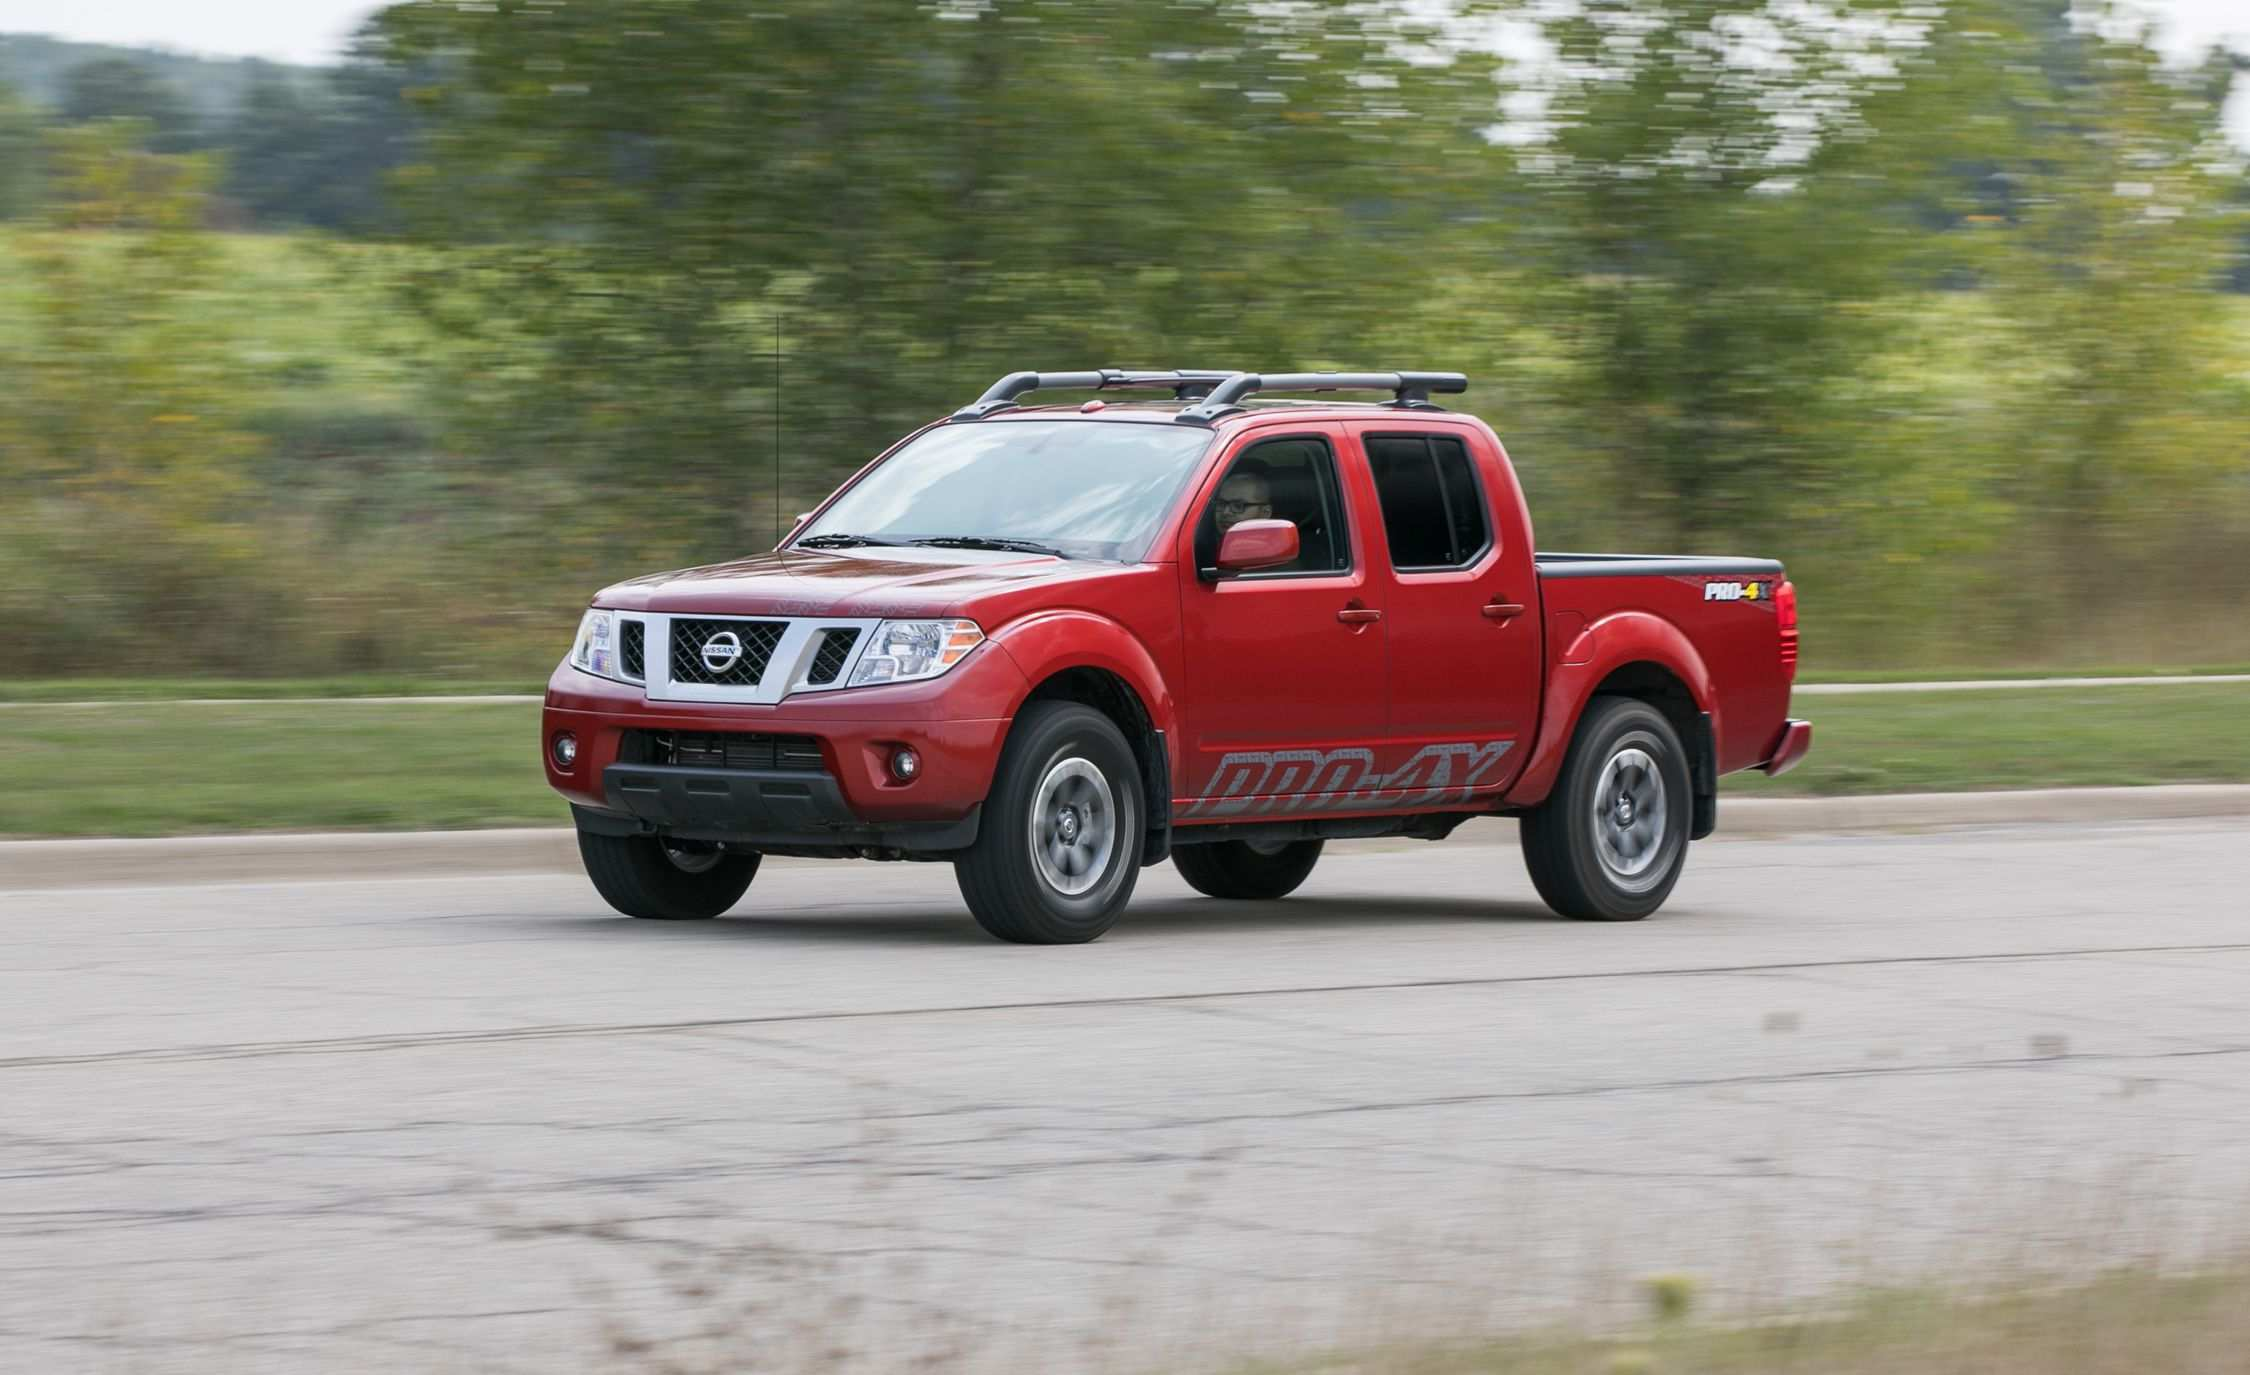 26 Gallery of New 2019 Nissan Frontier Pro 4X Release Date Price And Review Spy Shoot by New 2019 Nissan Frontier Pro 4X Release Date Price And Review